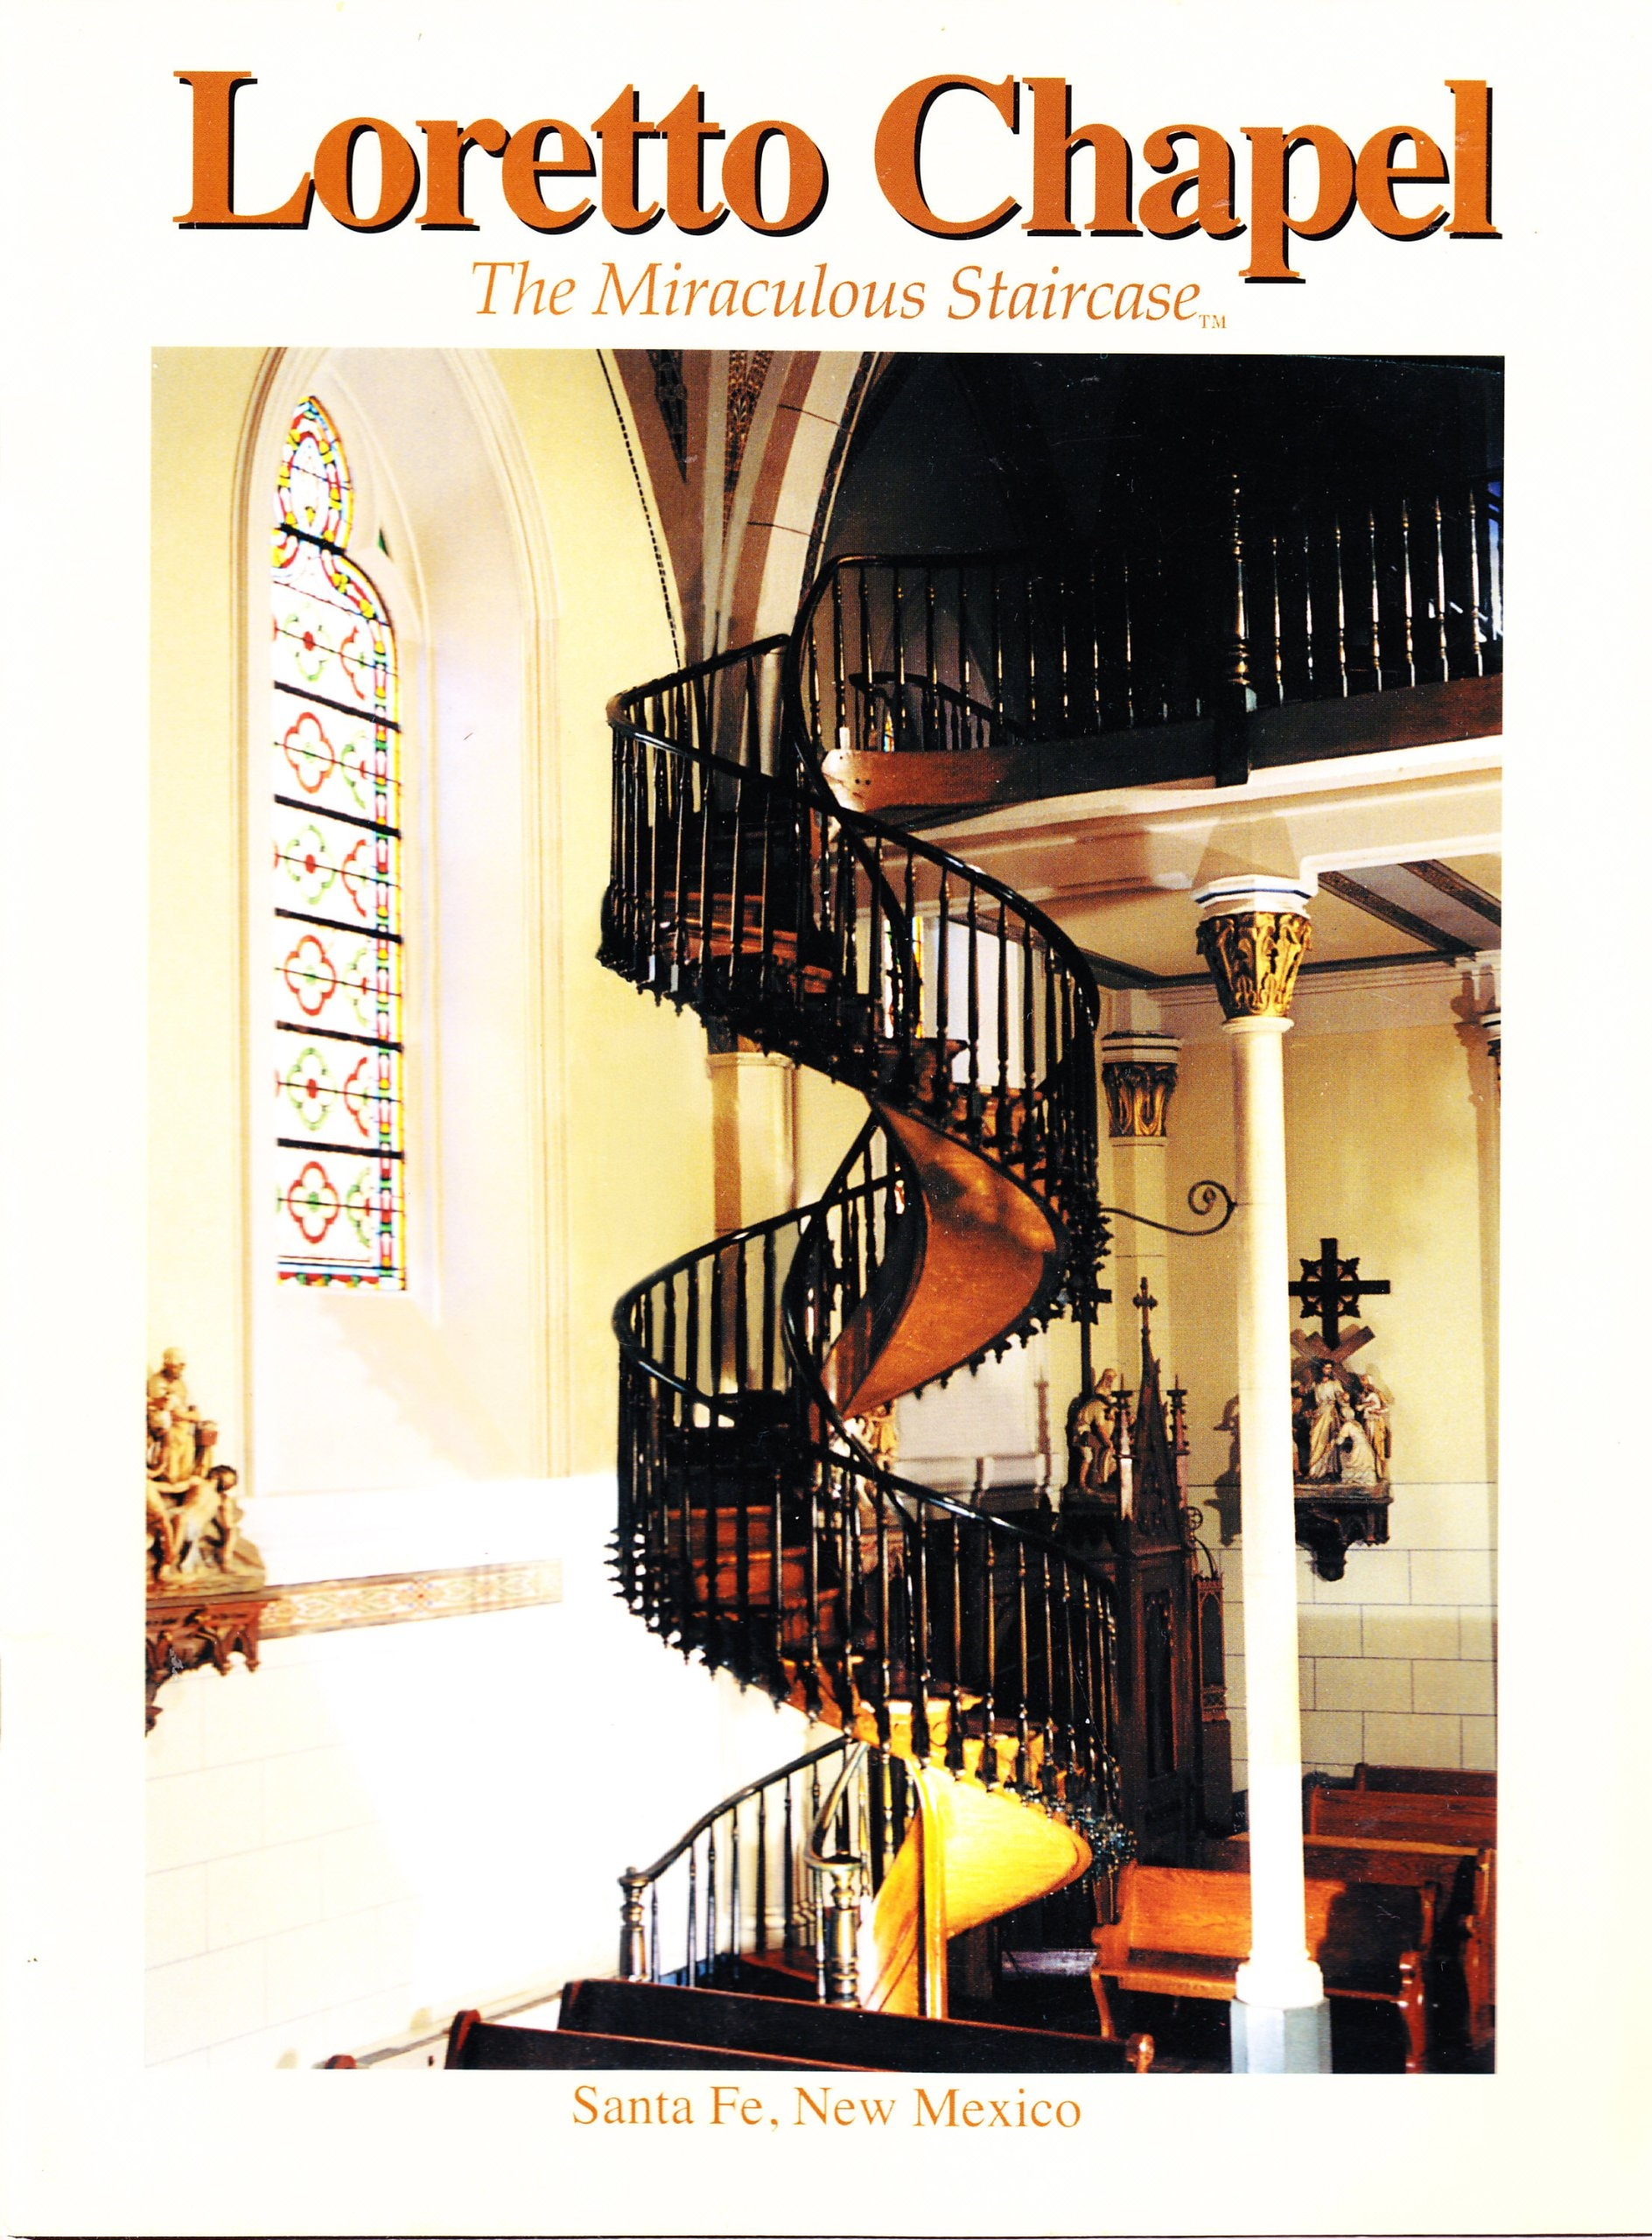 Loretto Chapel The Miraculous Staircase Bill Brokaw   The Staircase Of Loretto Chapel   Spiral   Explained   Ancient   Free Standing   Sparrow